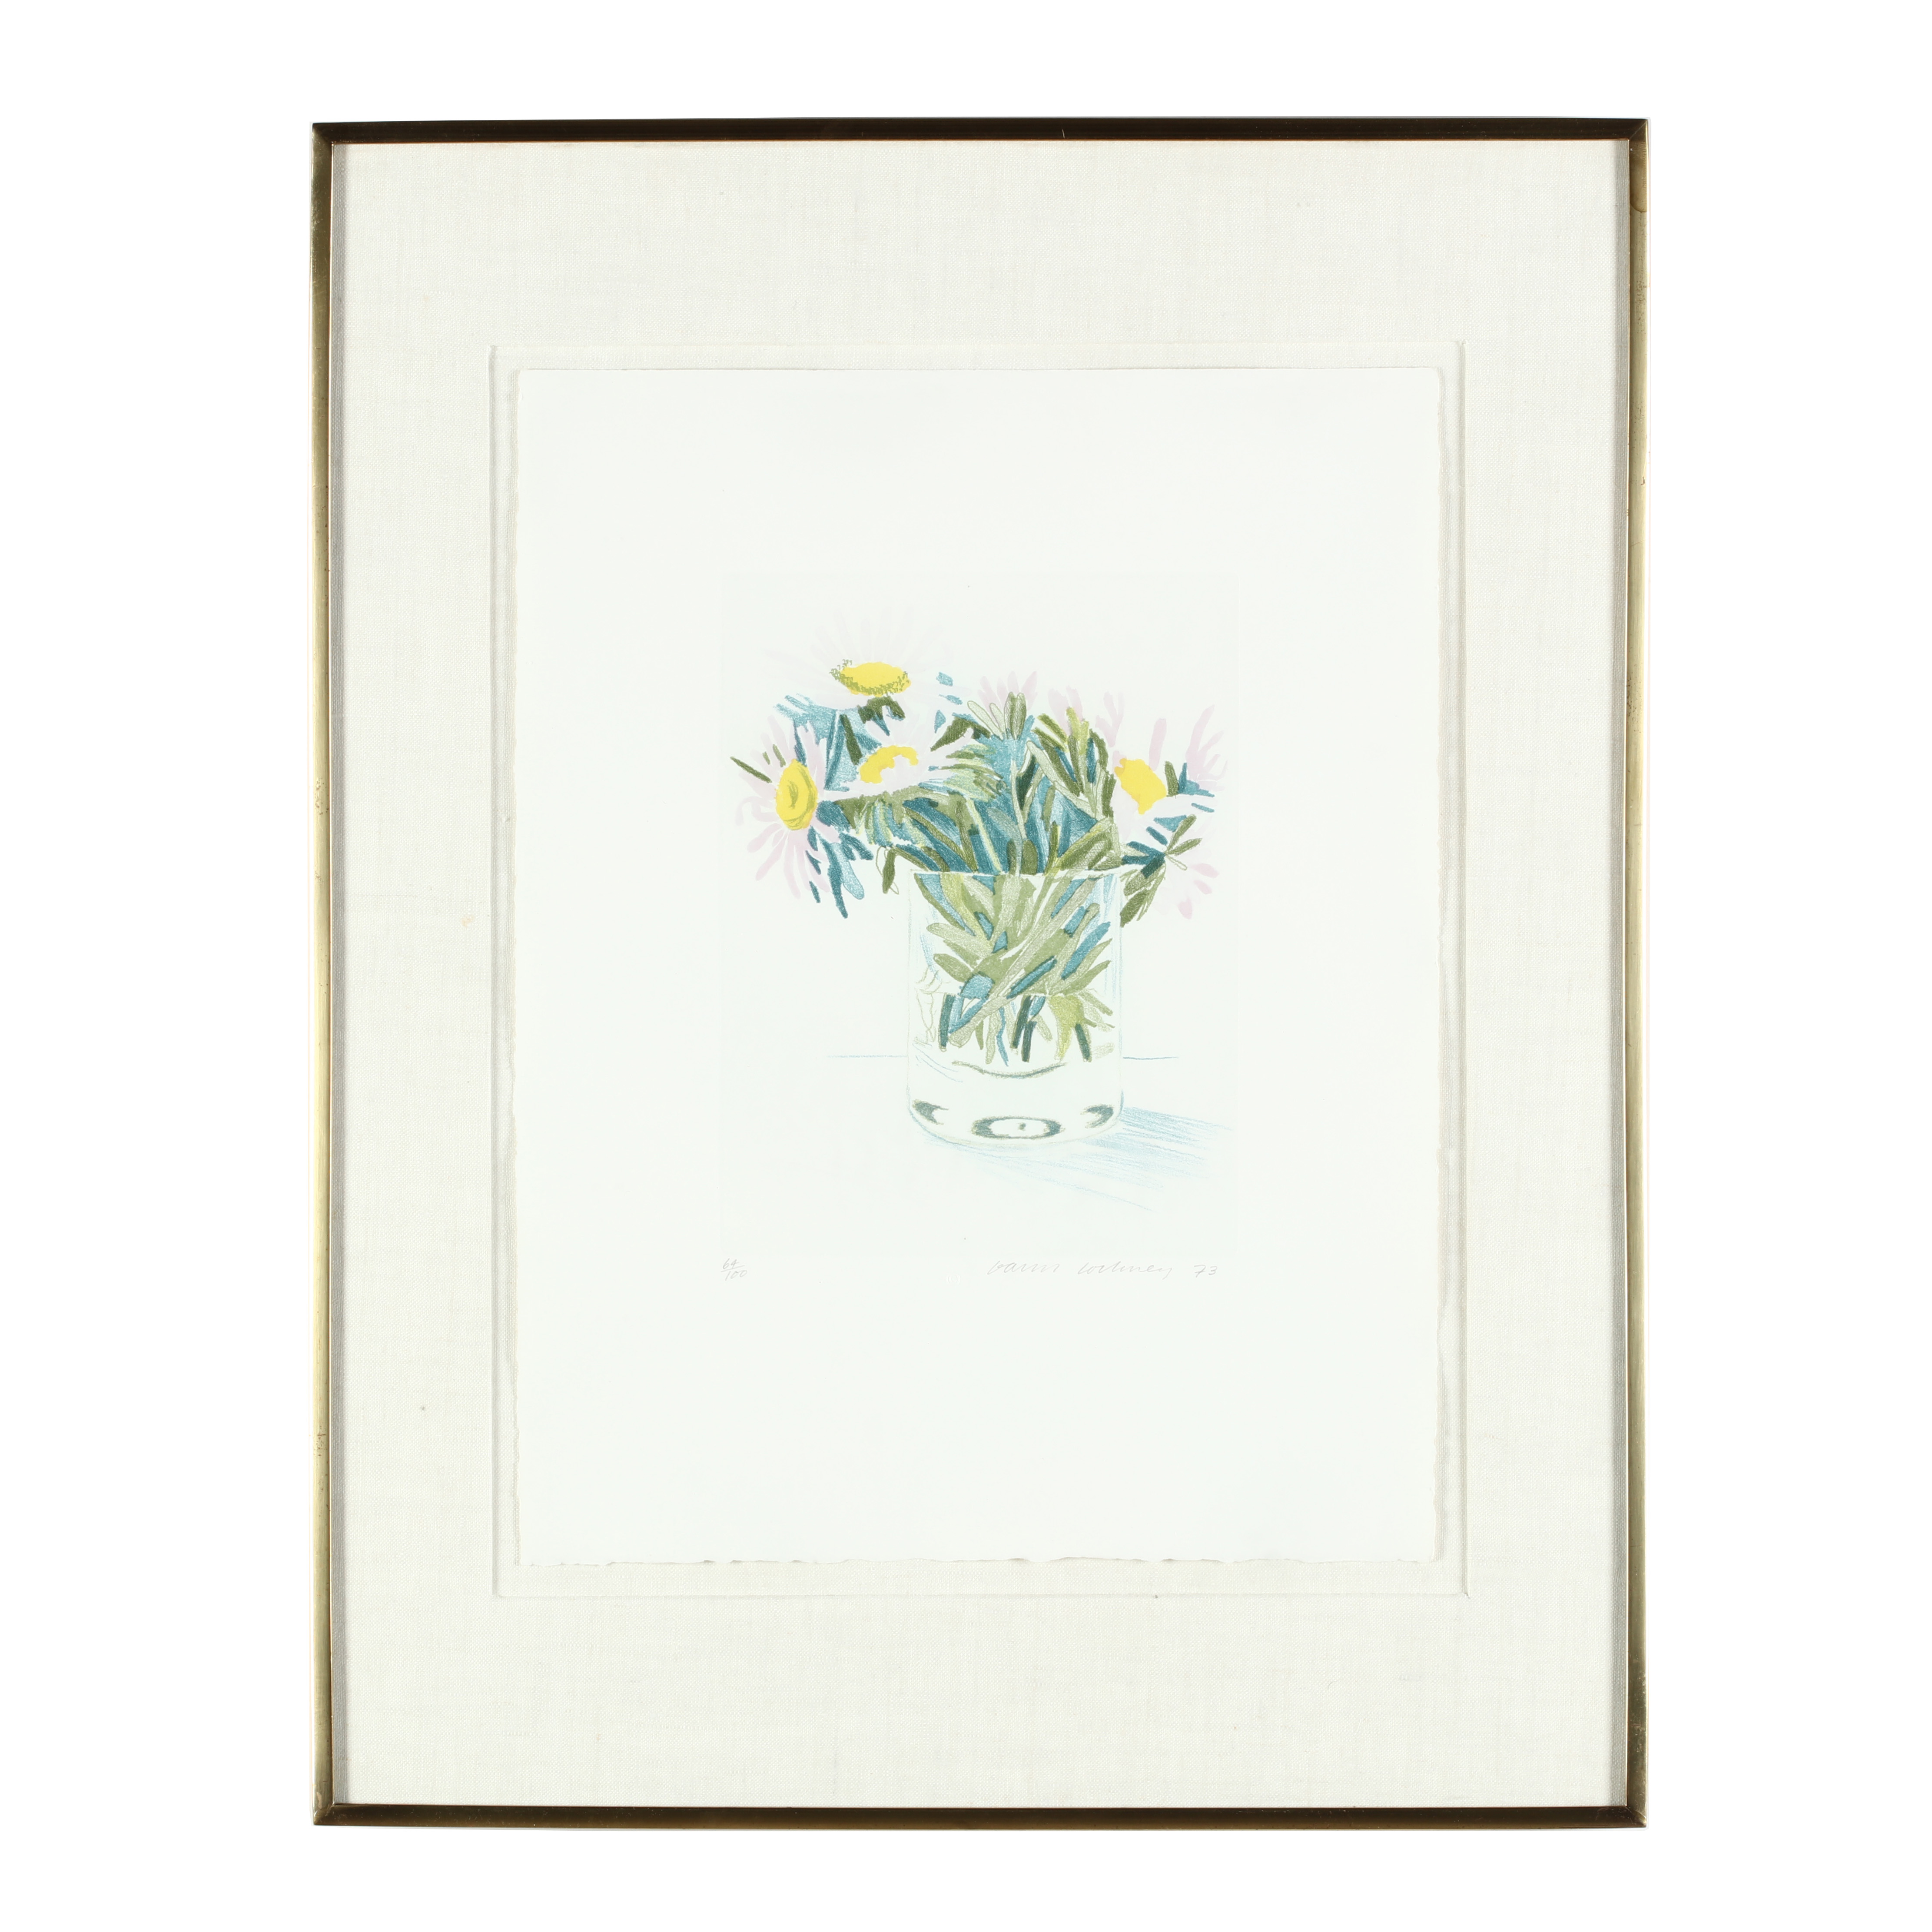 Marguerites, David Hockney. 1973, etching and aquatint in colors.